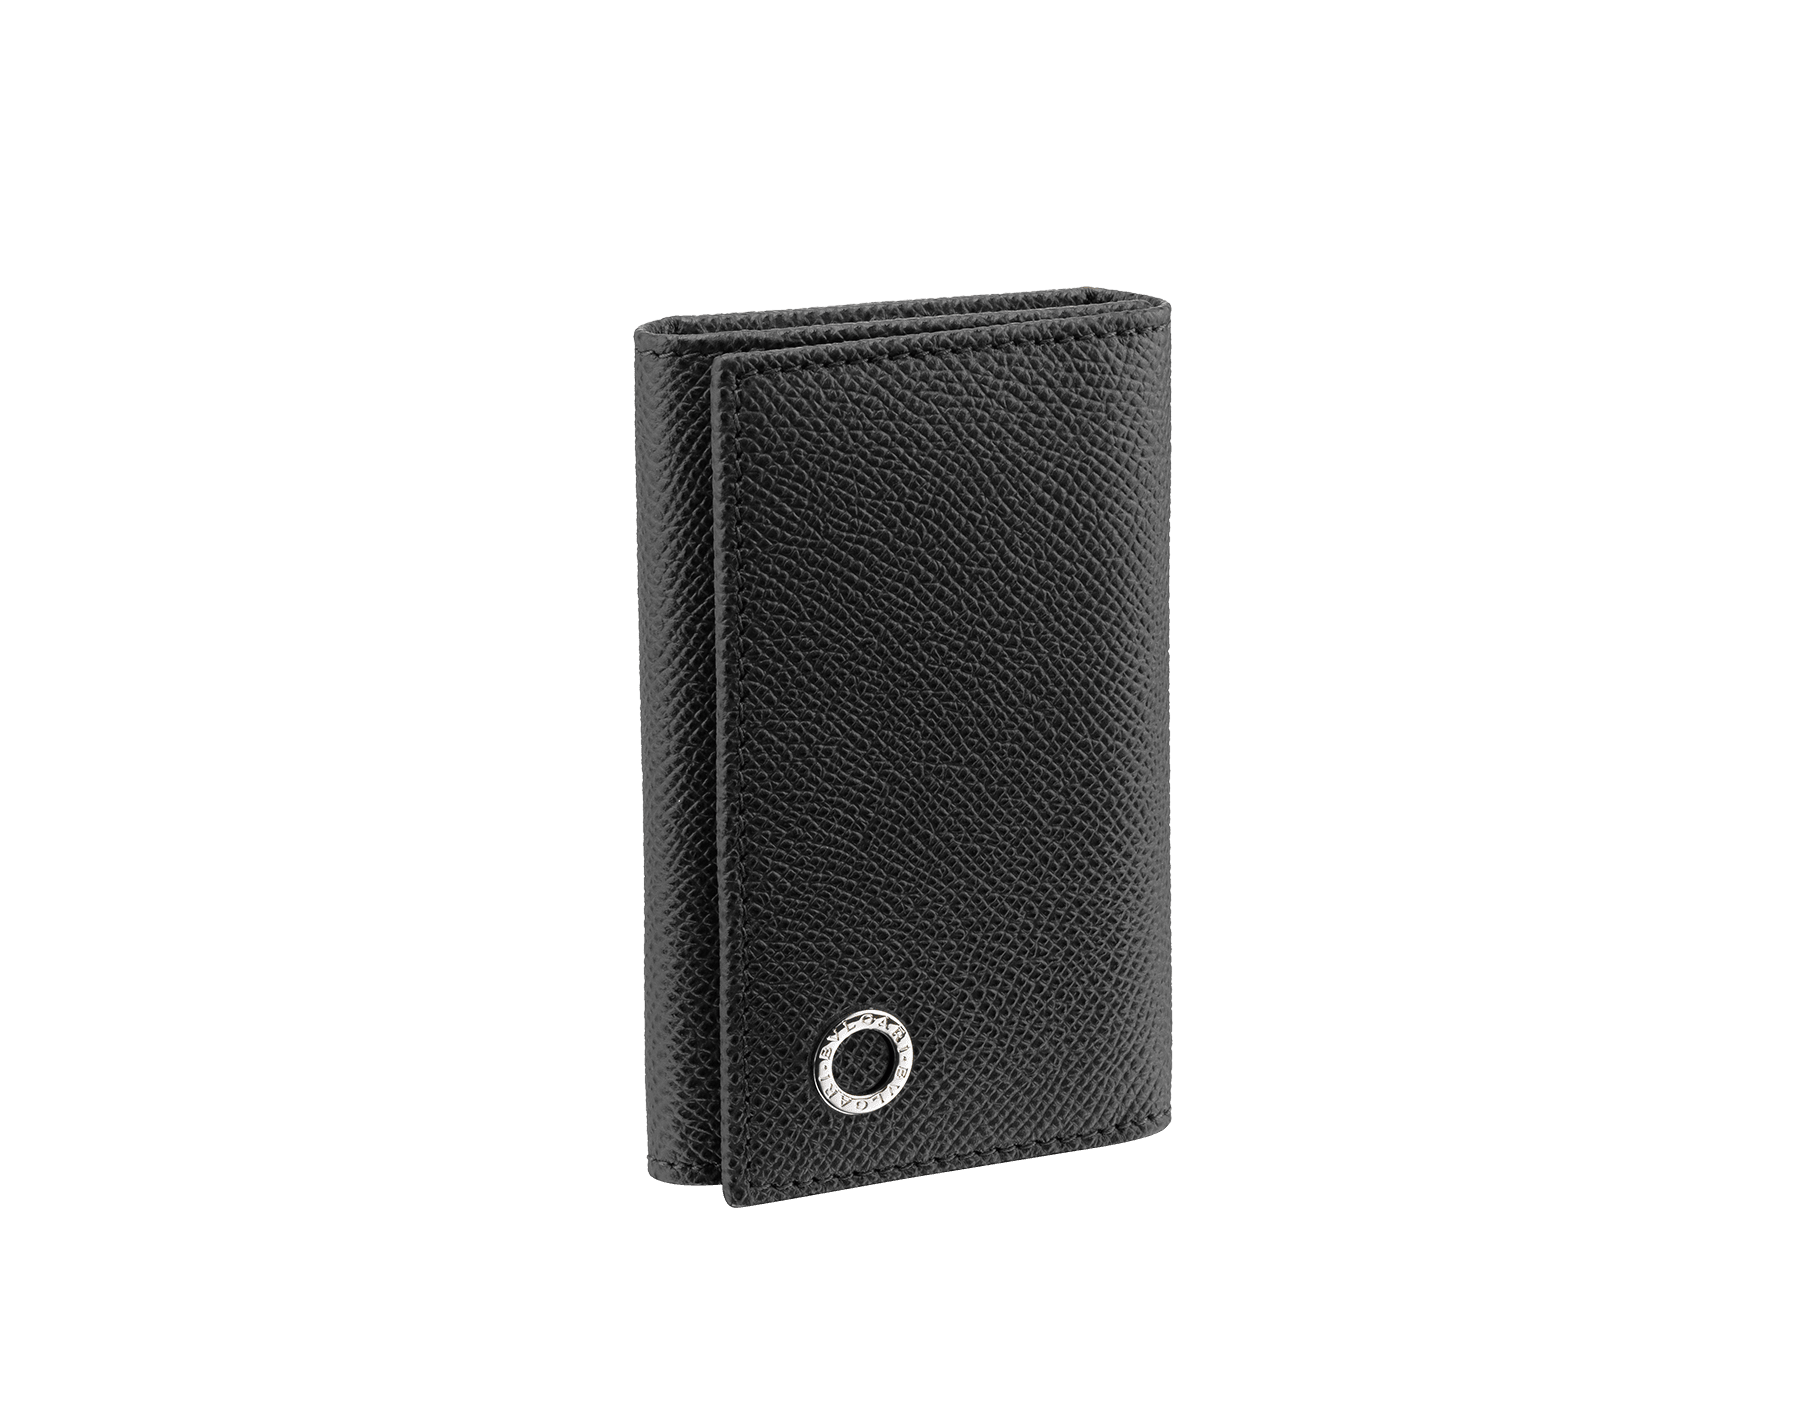 Small keyholder in black grain calf leather with brass palladium plated hardware featuring the Bvlgari-Bvlgari motif. Six internal key holders, two pockets and one open compartment inside. Flap closure with press button. BBM-KEYHOLDER-S image 1